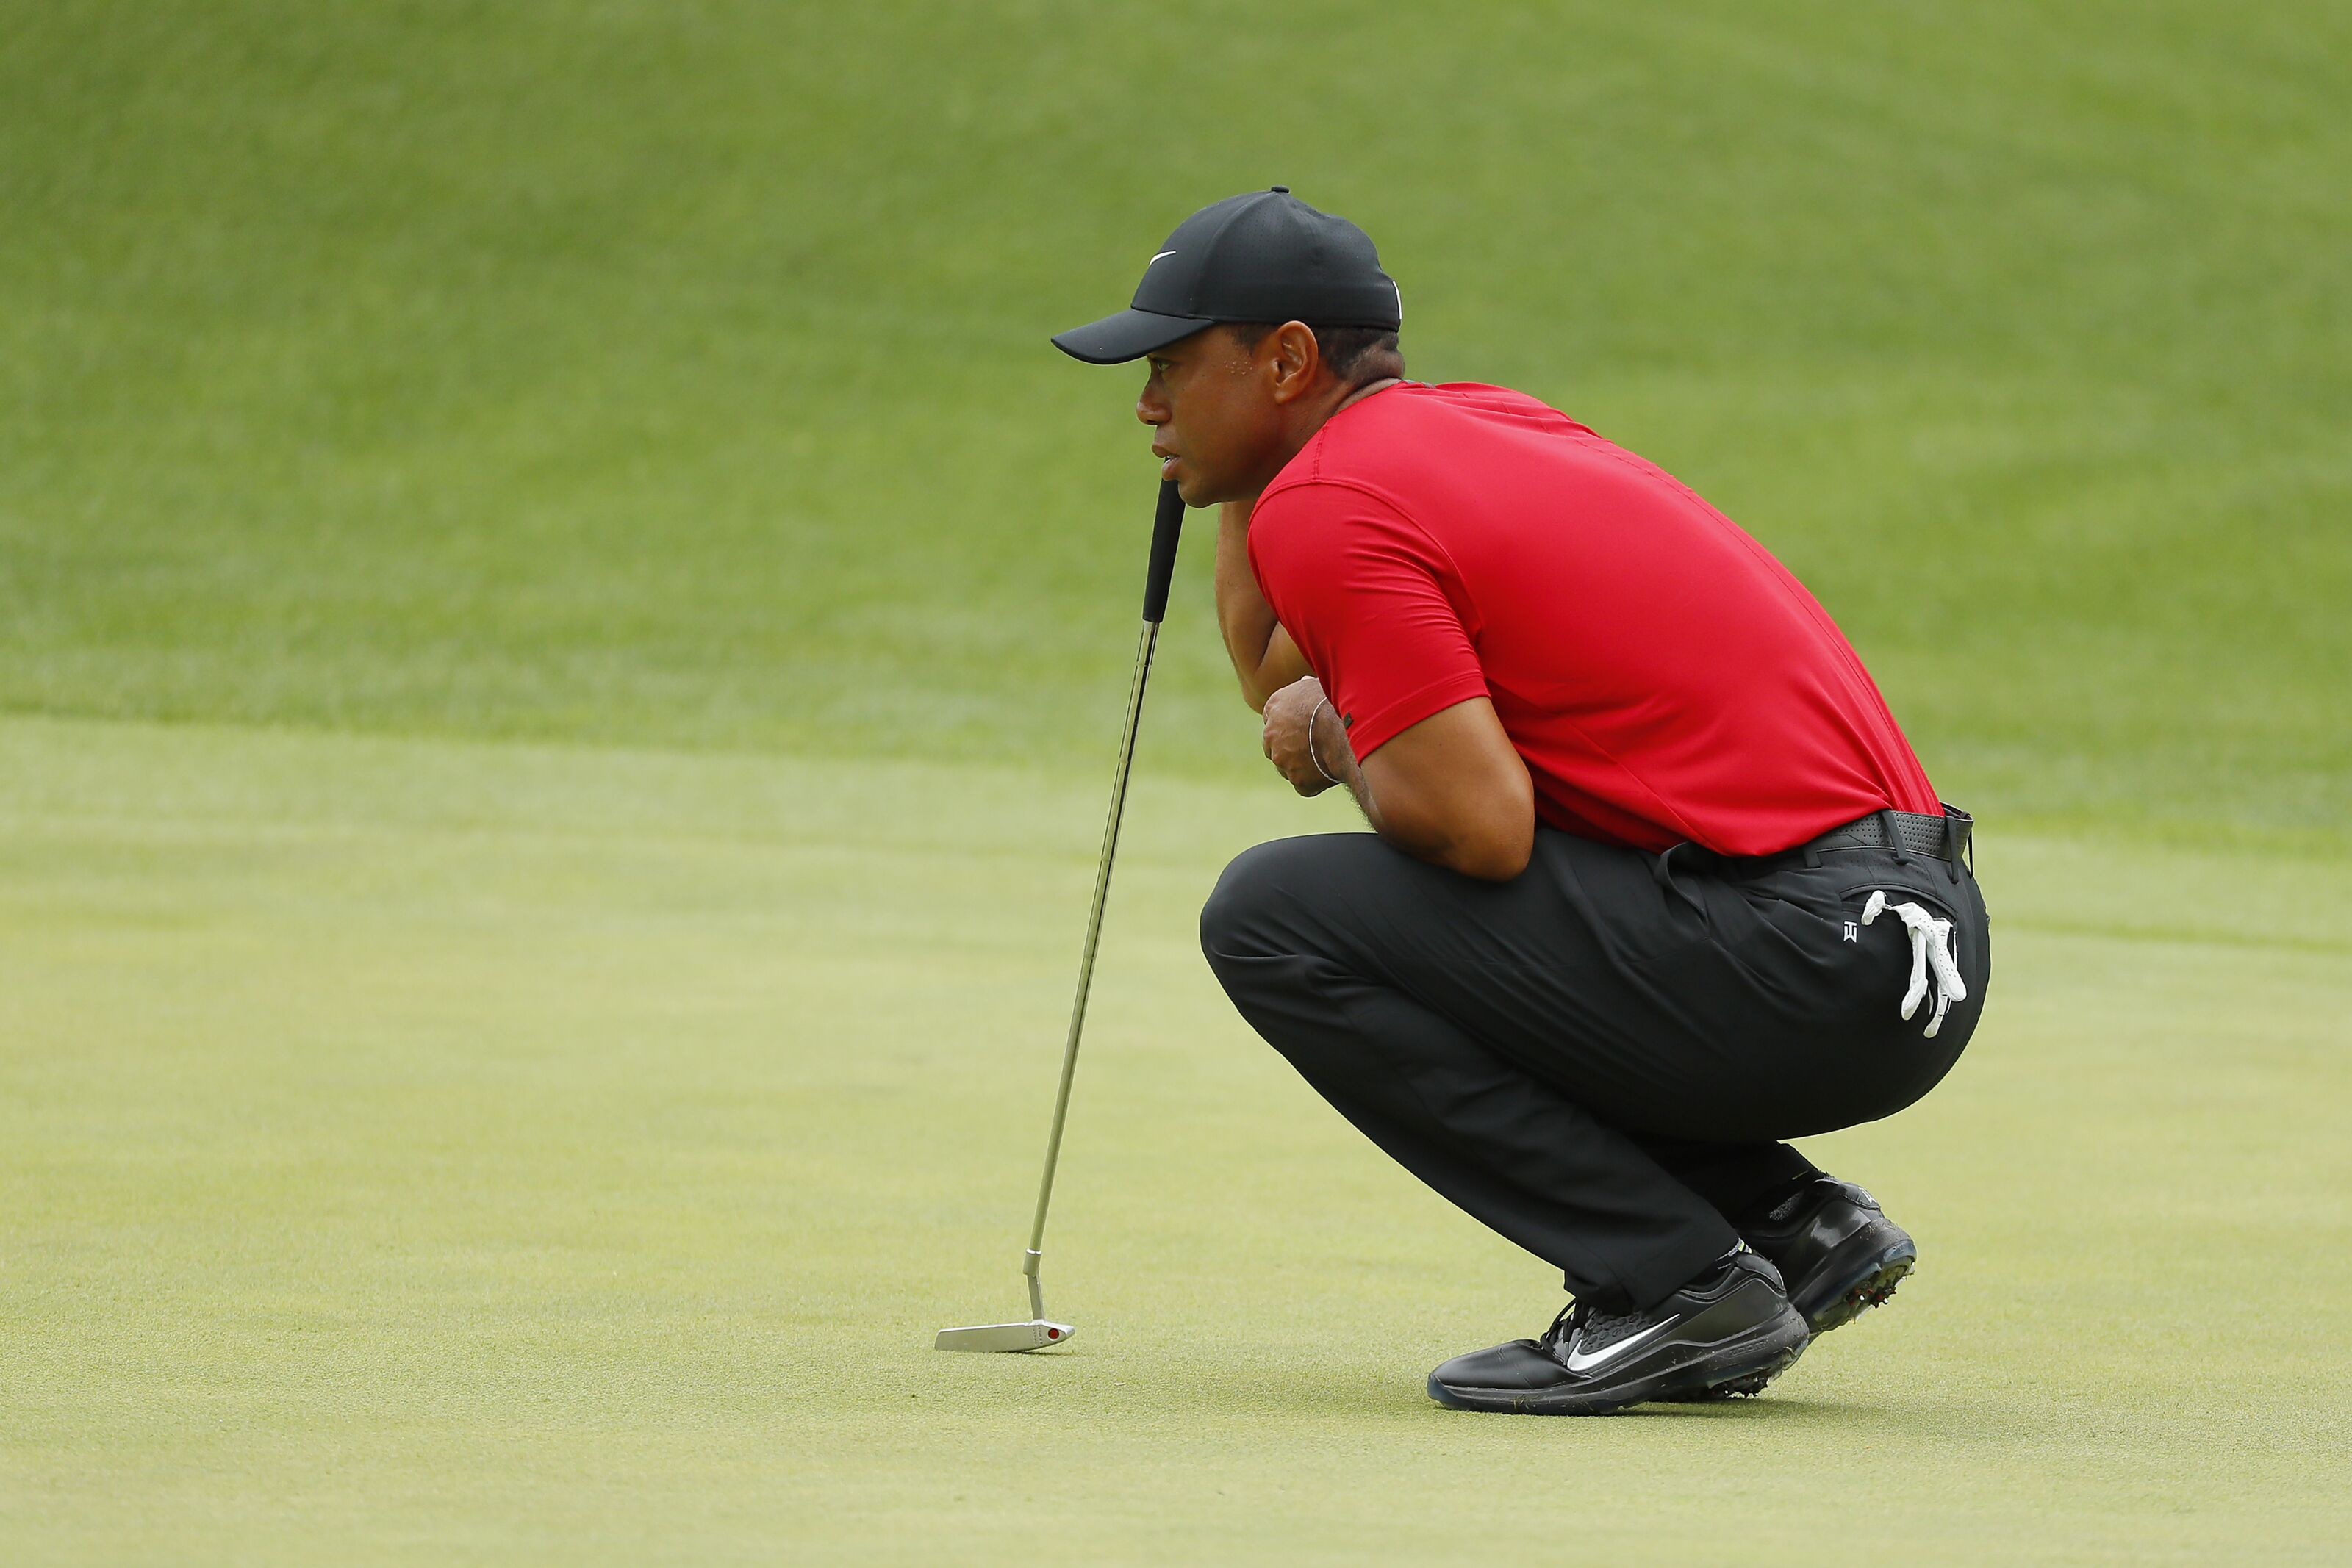 AUGUSTA, GEORGIA - APRIL 14: Tiger Woods of the United States lines up a putt on the eighth green during the final round of the Masters at Augusta National Golf Club on April 14, 2019 in Augusta, Georgia. (Photo by Kevin C. Cox/Getty Images)